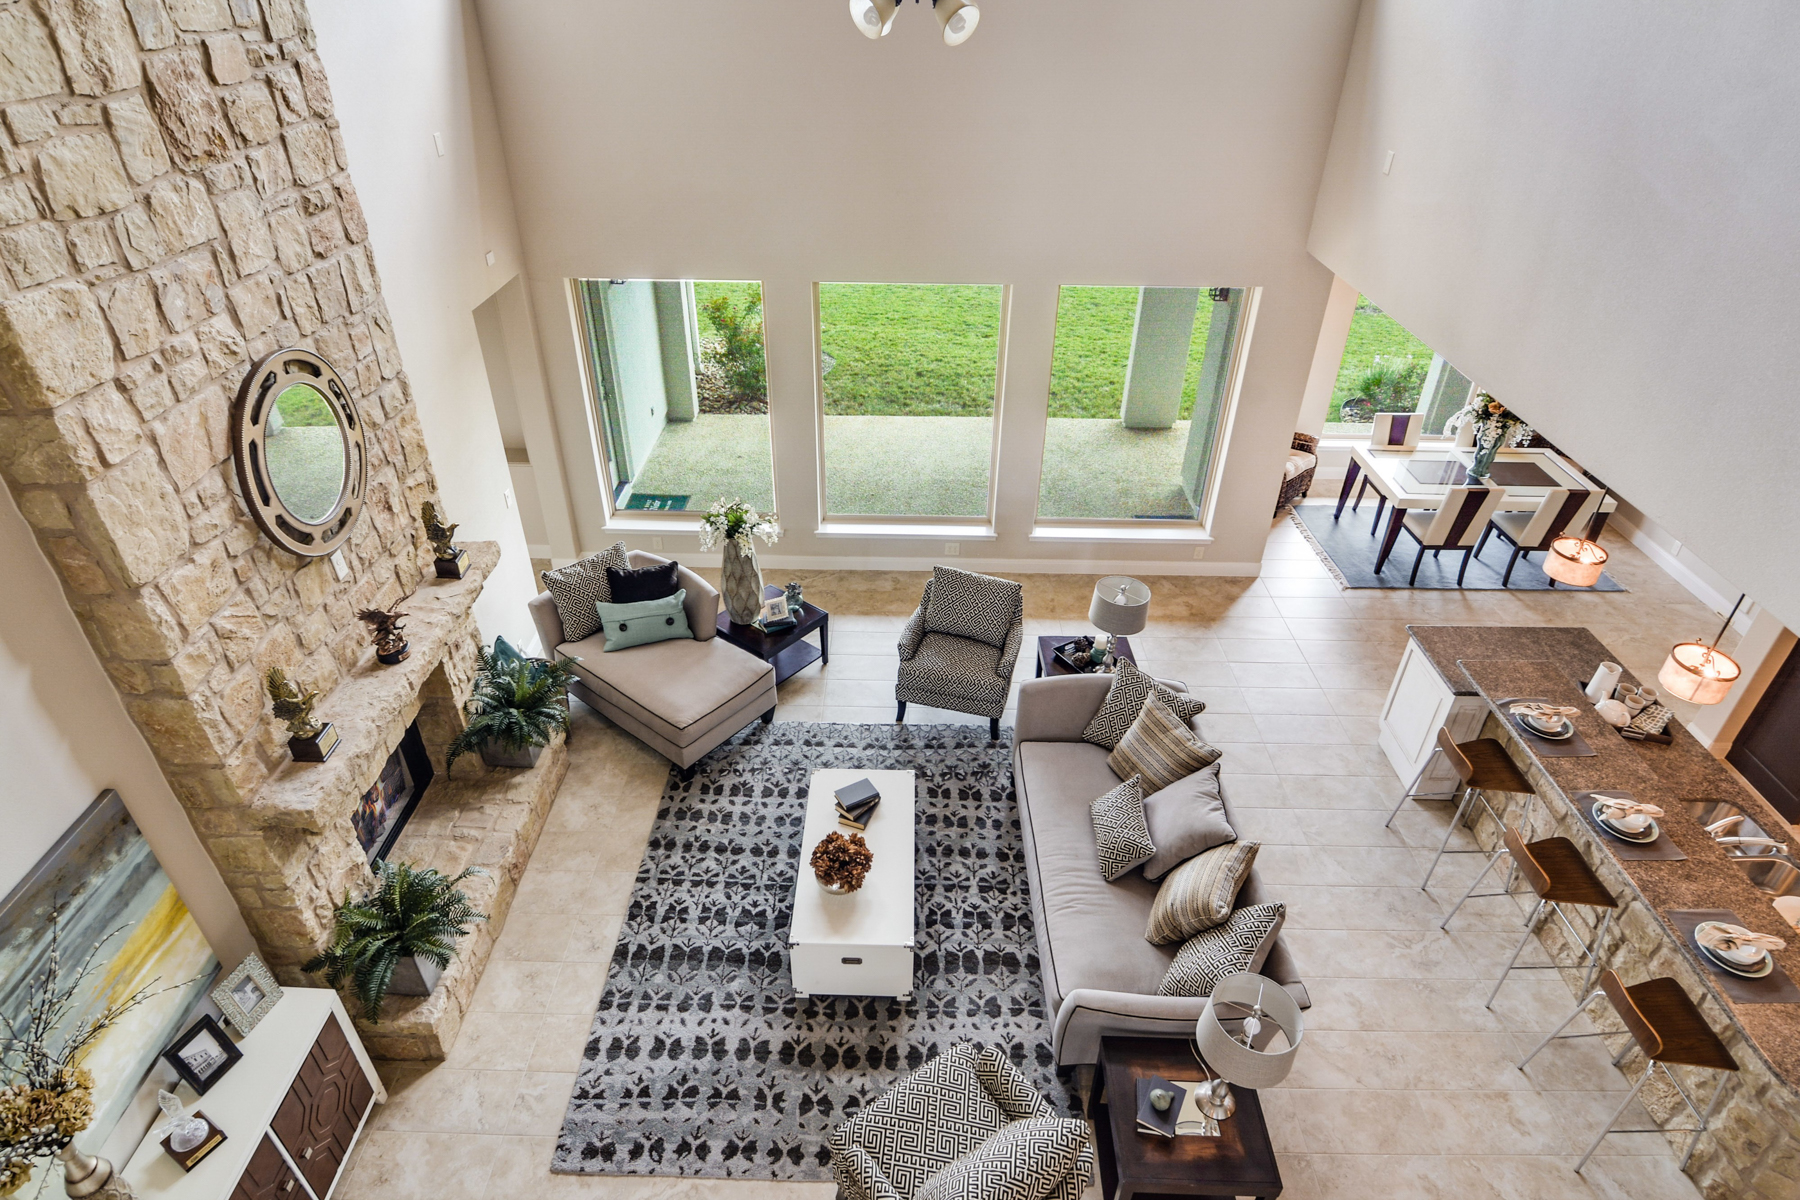 Additional photo for property listing at Stunning Mediterranean Estate in The Dominion 6318 Sevilla Way San Antonio, Texas 78257 United States